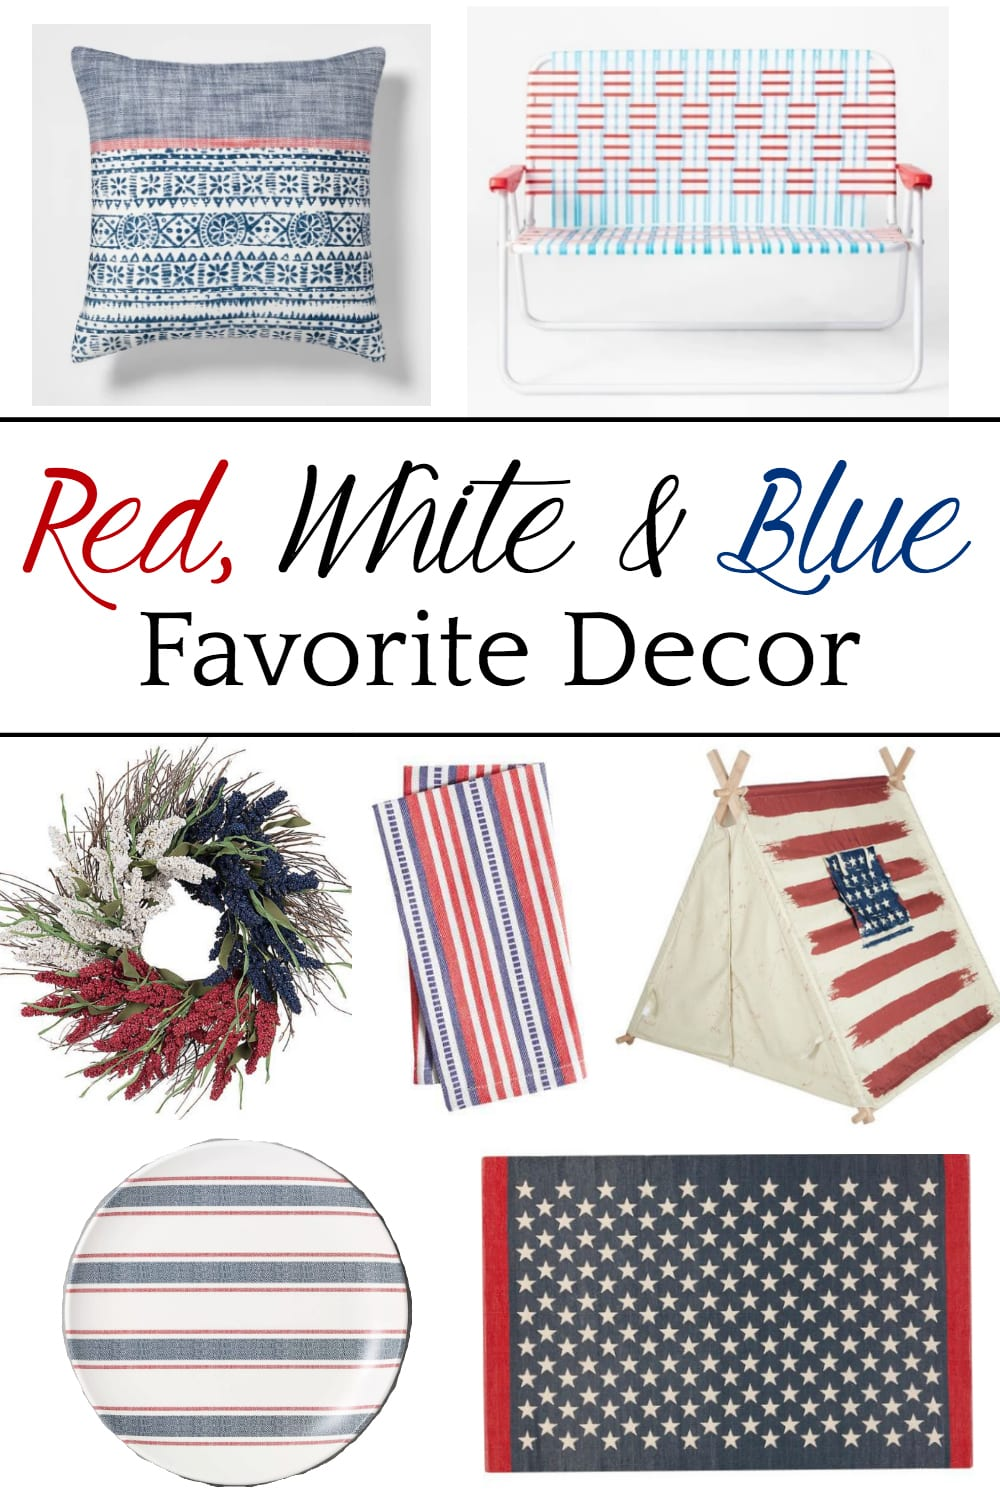 Red, White & Blue Favorite Decor | All of the best designer style patriotic home decor for outdoor entertaining that won't break the bank. #july4th #july4thdecor #redwhitebluedecor #patrioticdecor